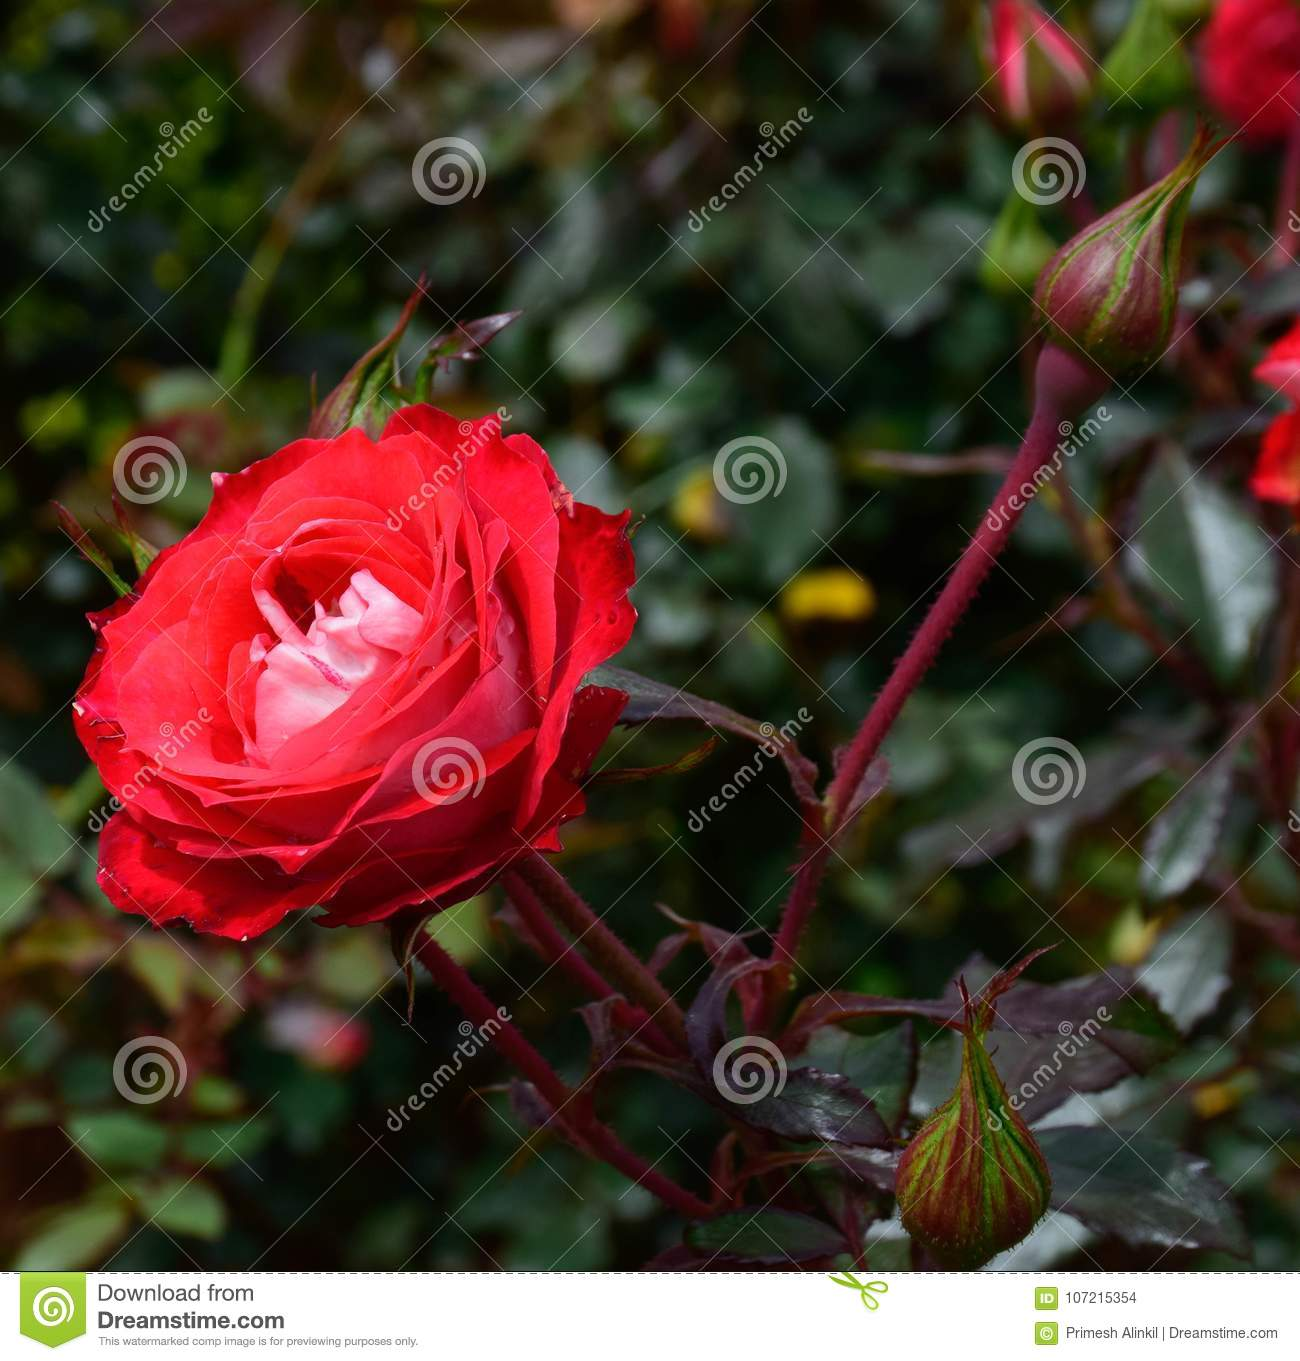 Beautiful rose flower in a rose gardenooty stock photo image of download beautiful rose flower in a rose gardenooty stock photo image of beautiful izmirmasajfo